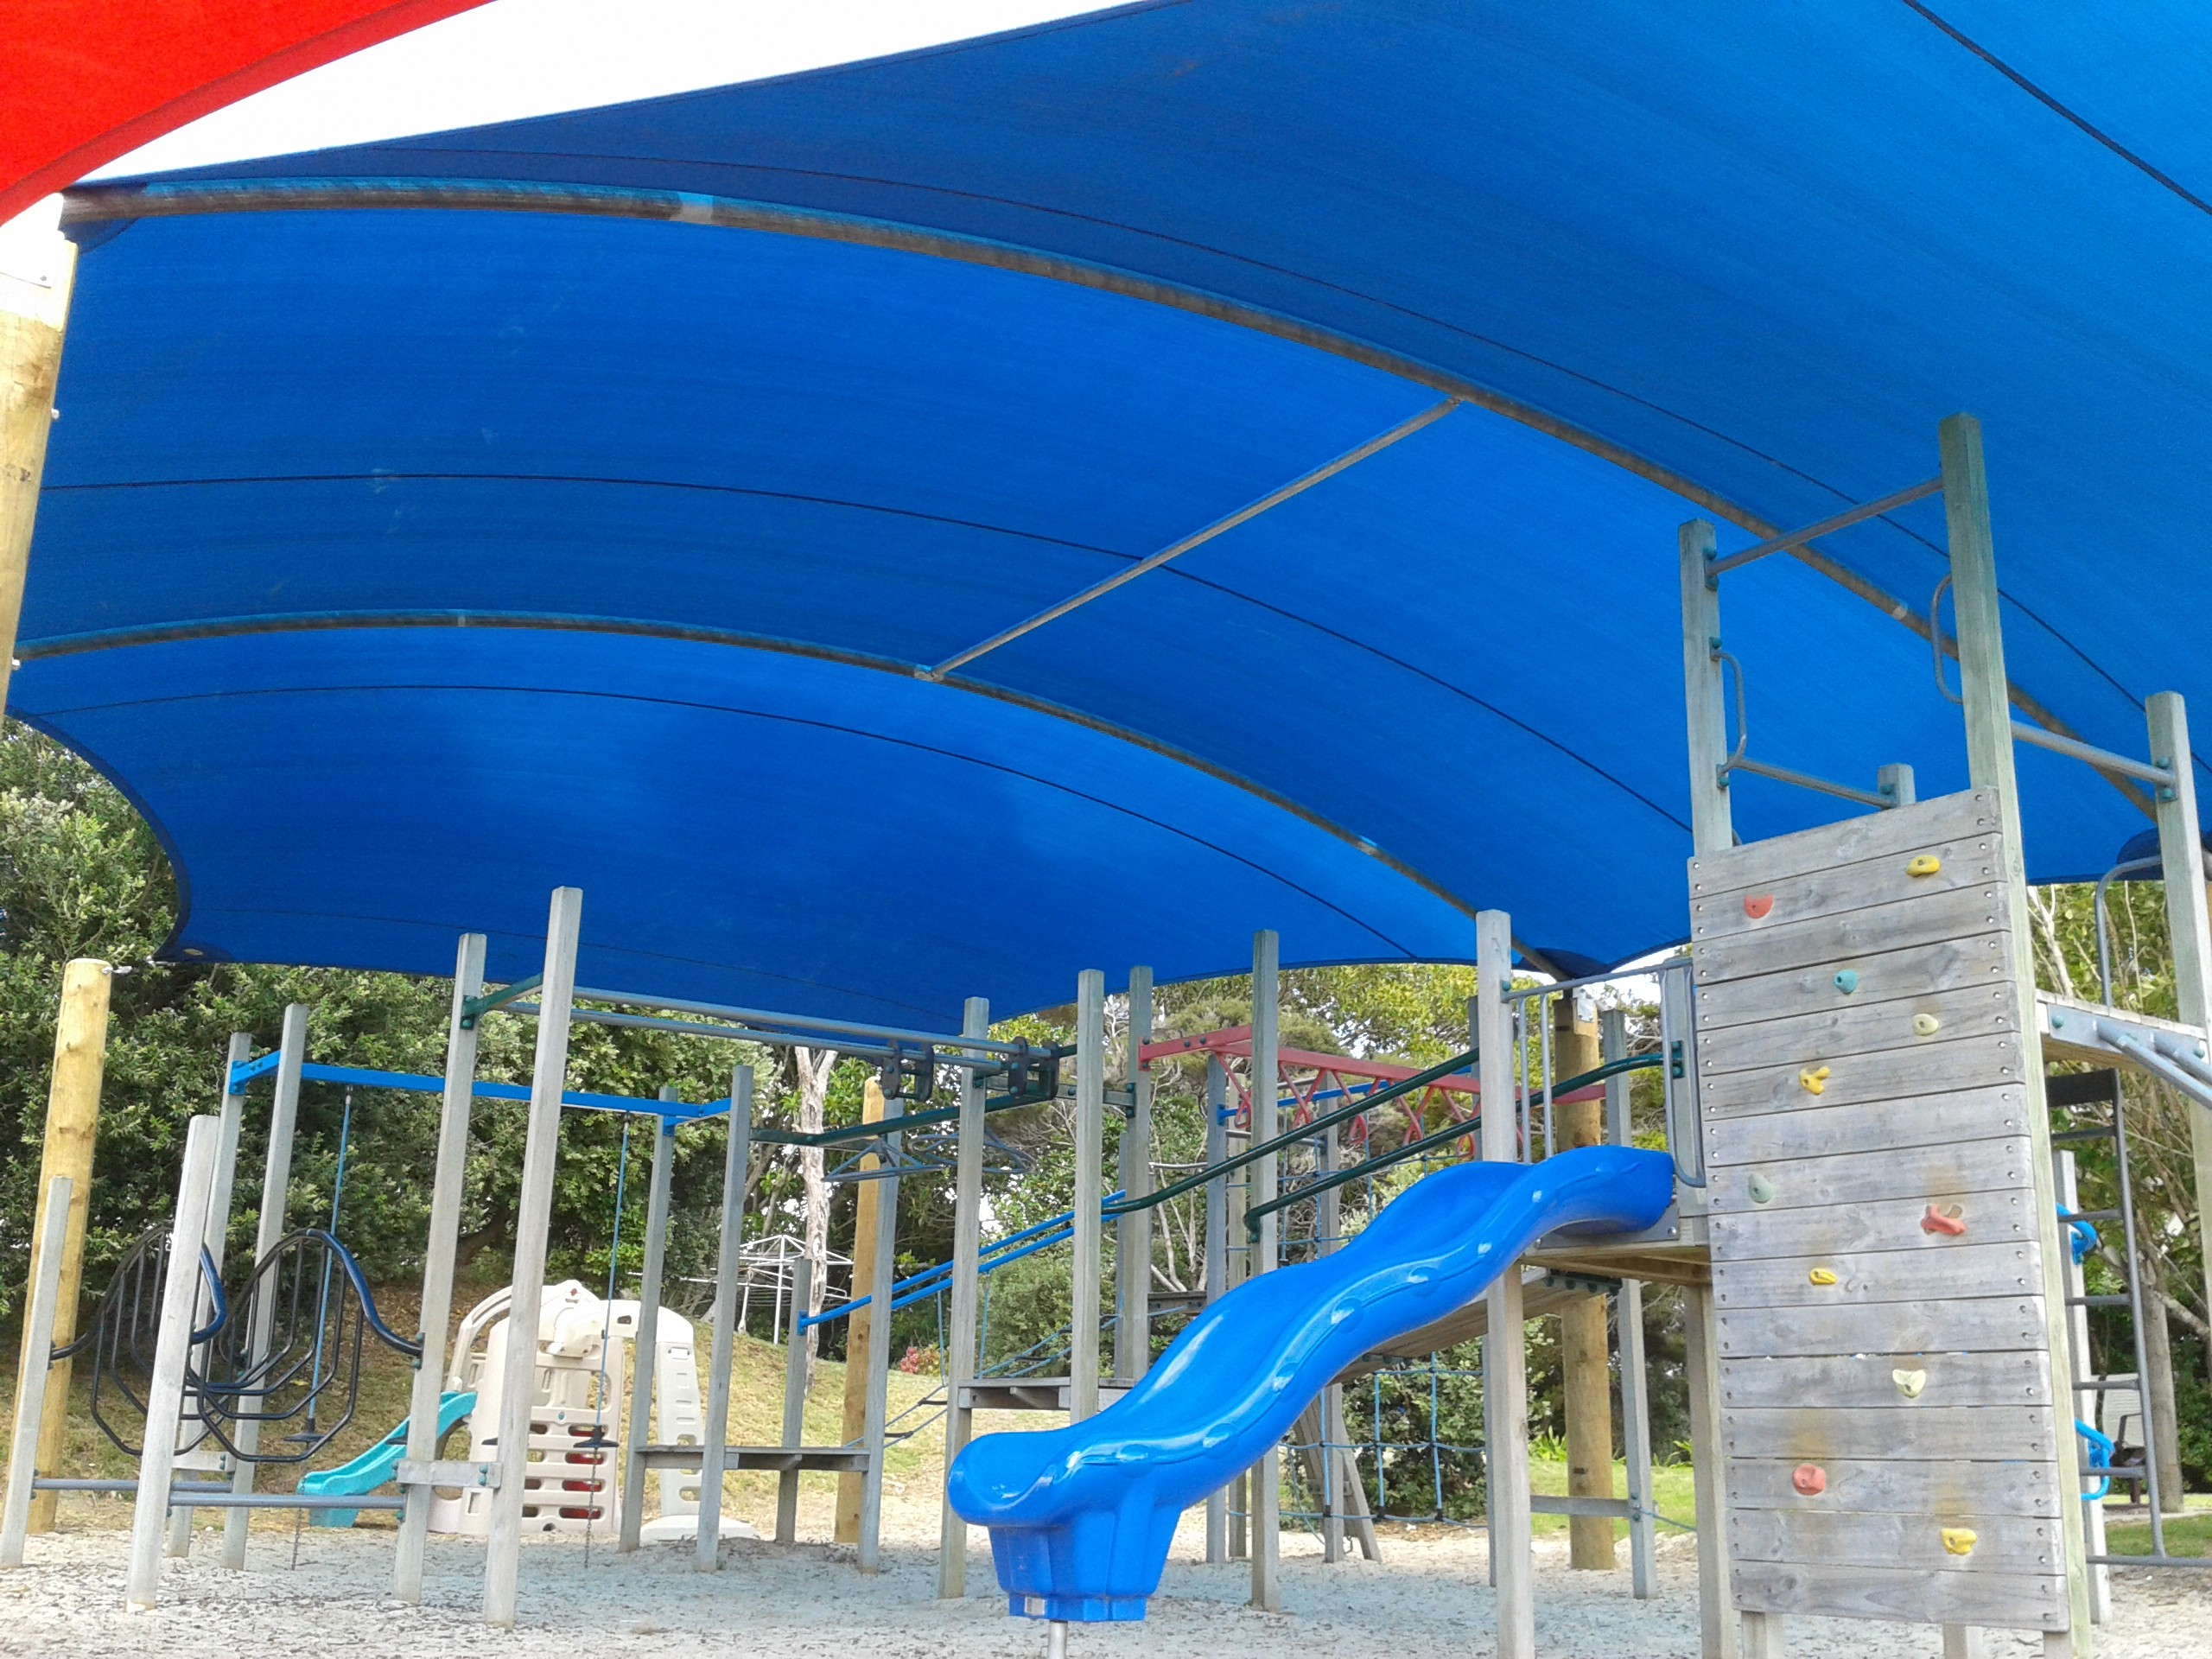 Shade Sail over a frame at a playground